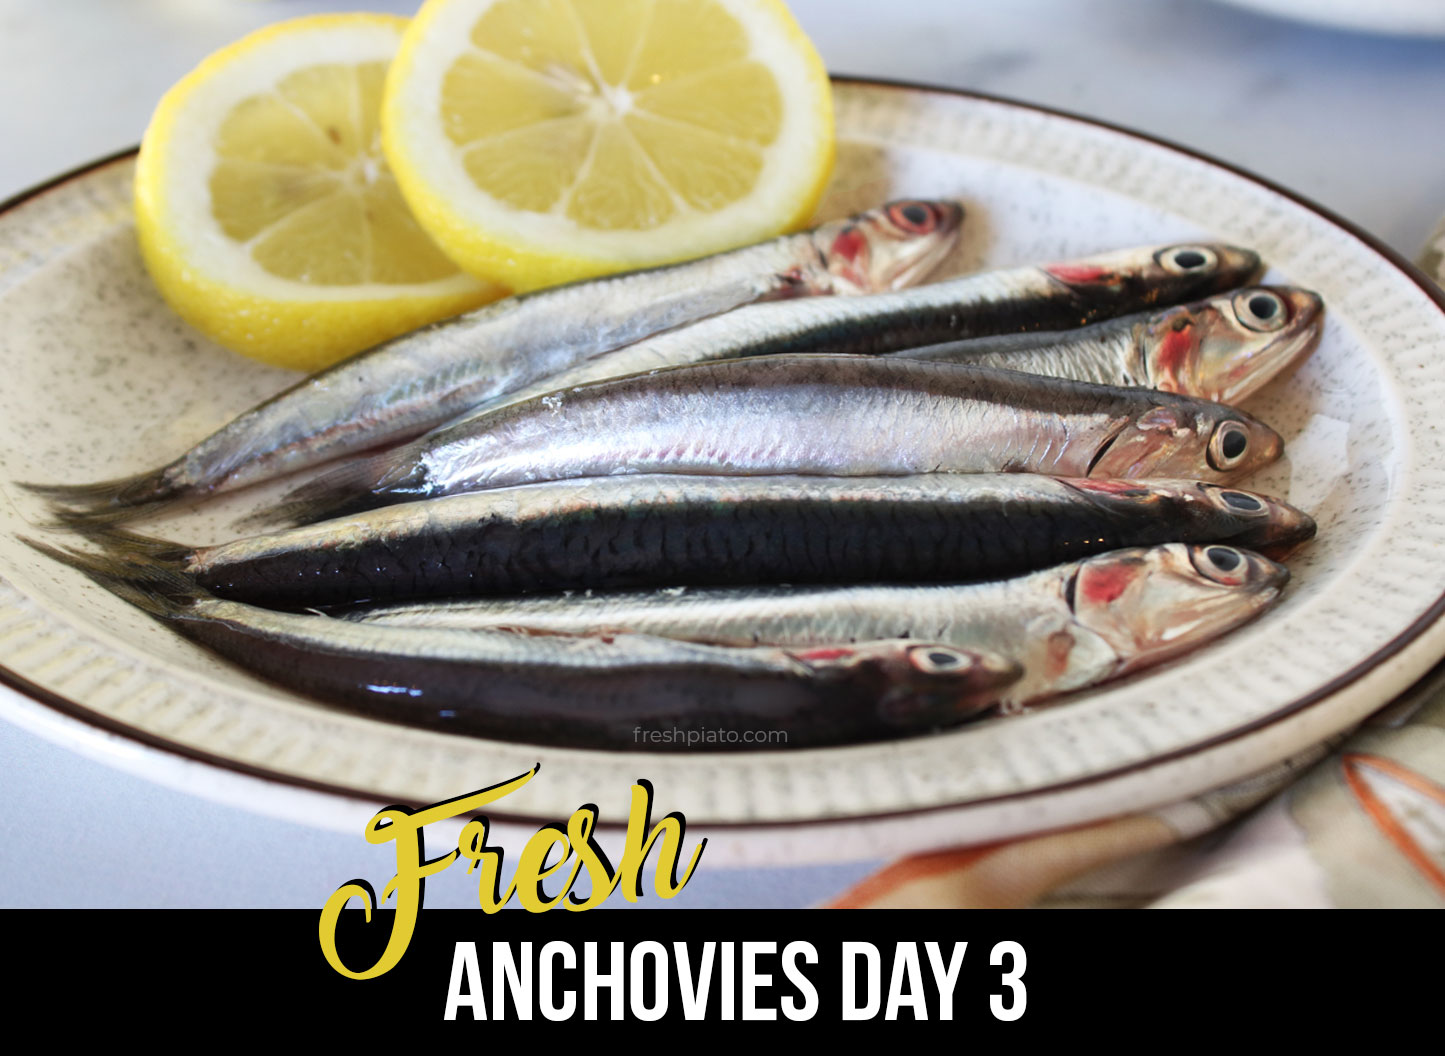 How to identify fresh anchovy day1